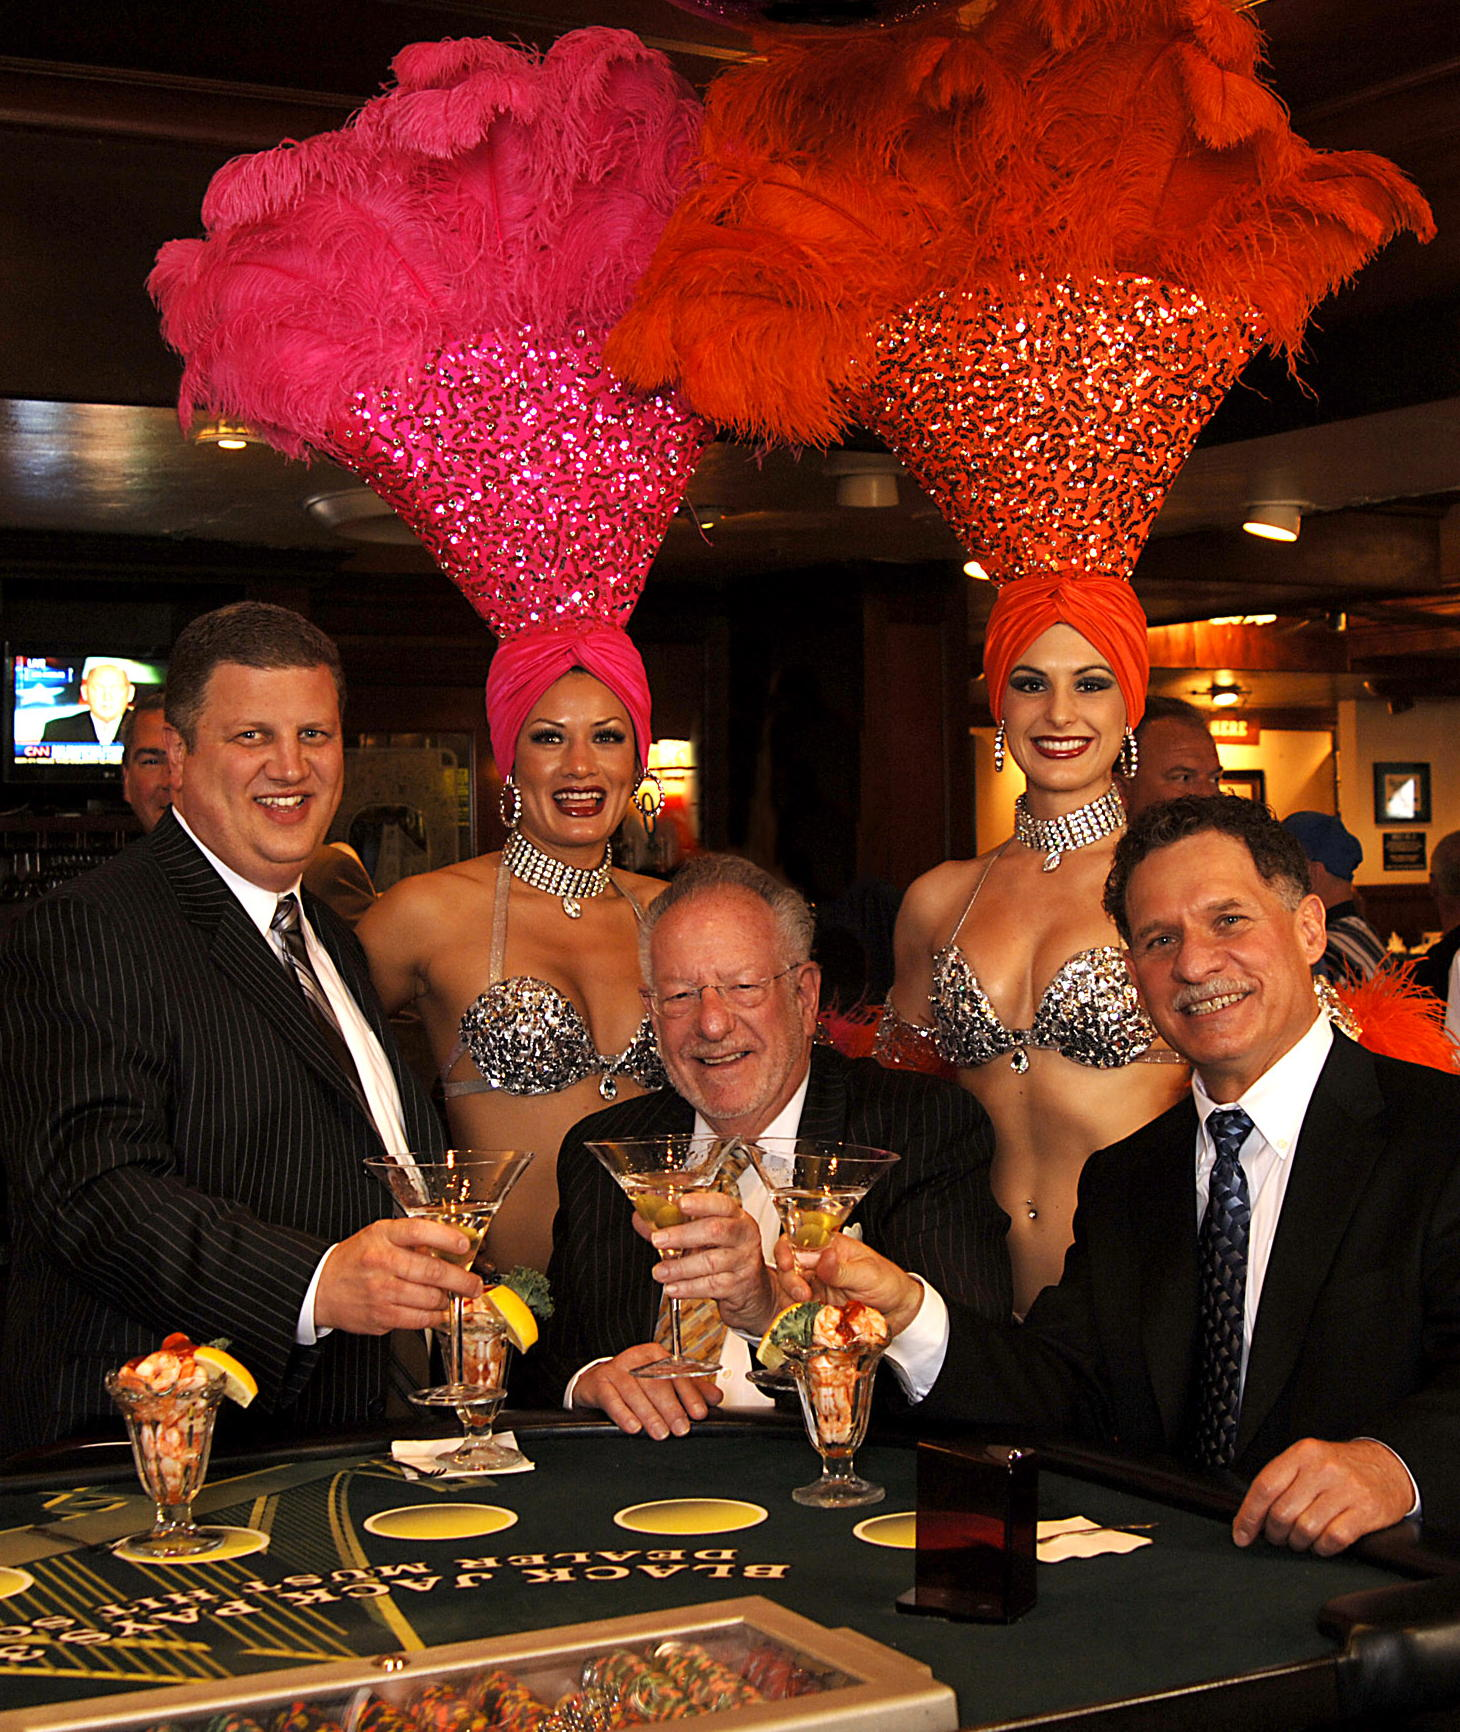 Mayor Oscar Goodman toasts co-owner Mark Brandenburg and his new partners, Derek & Greg Stevens, launching a new chapter in the history of the jewel of downtown Las Vegas.